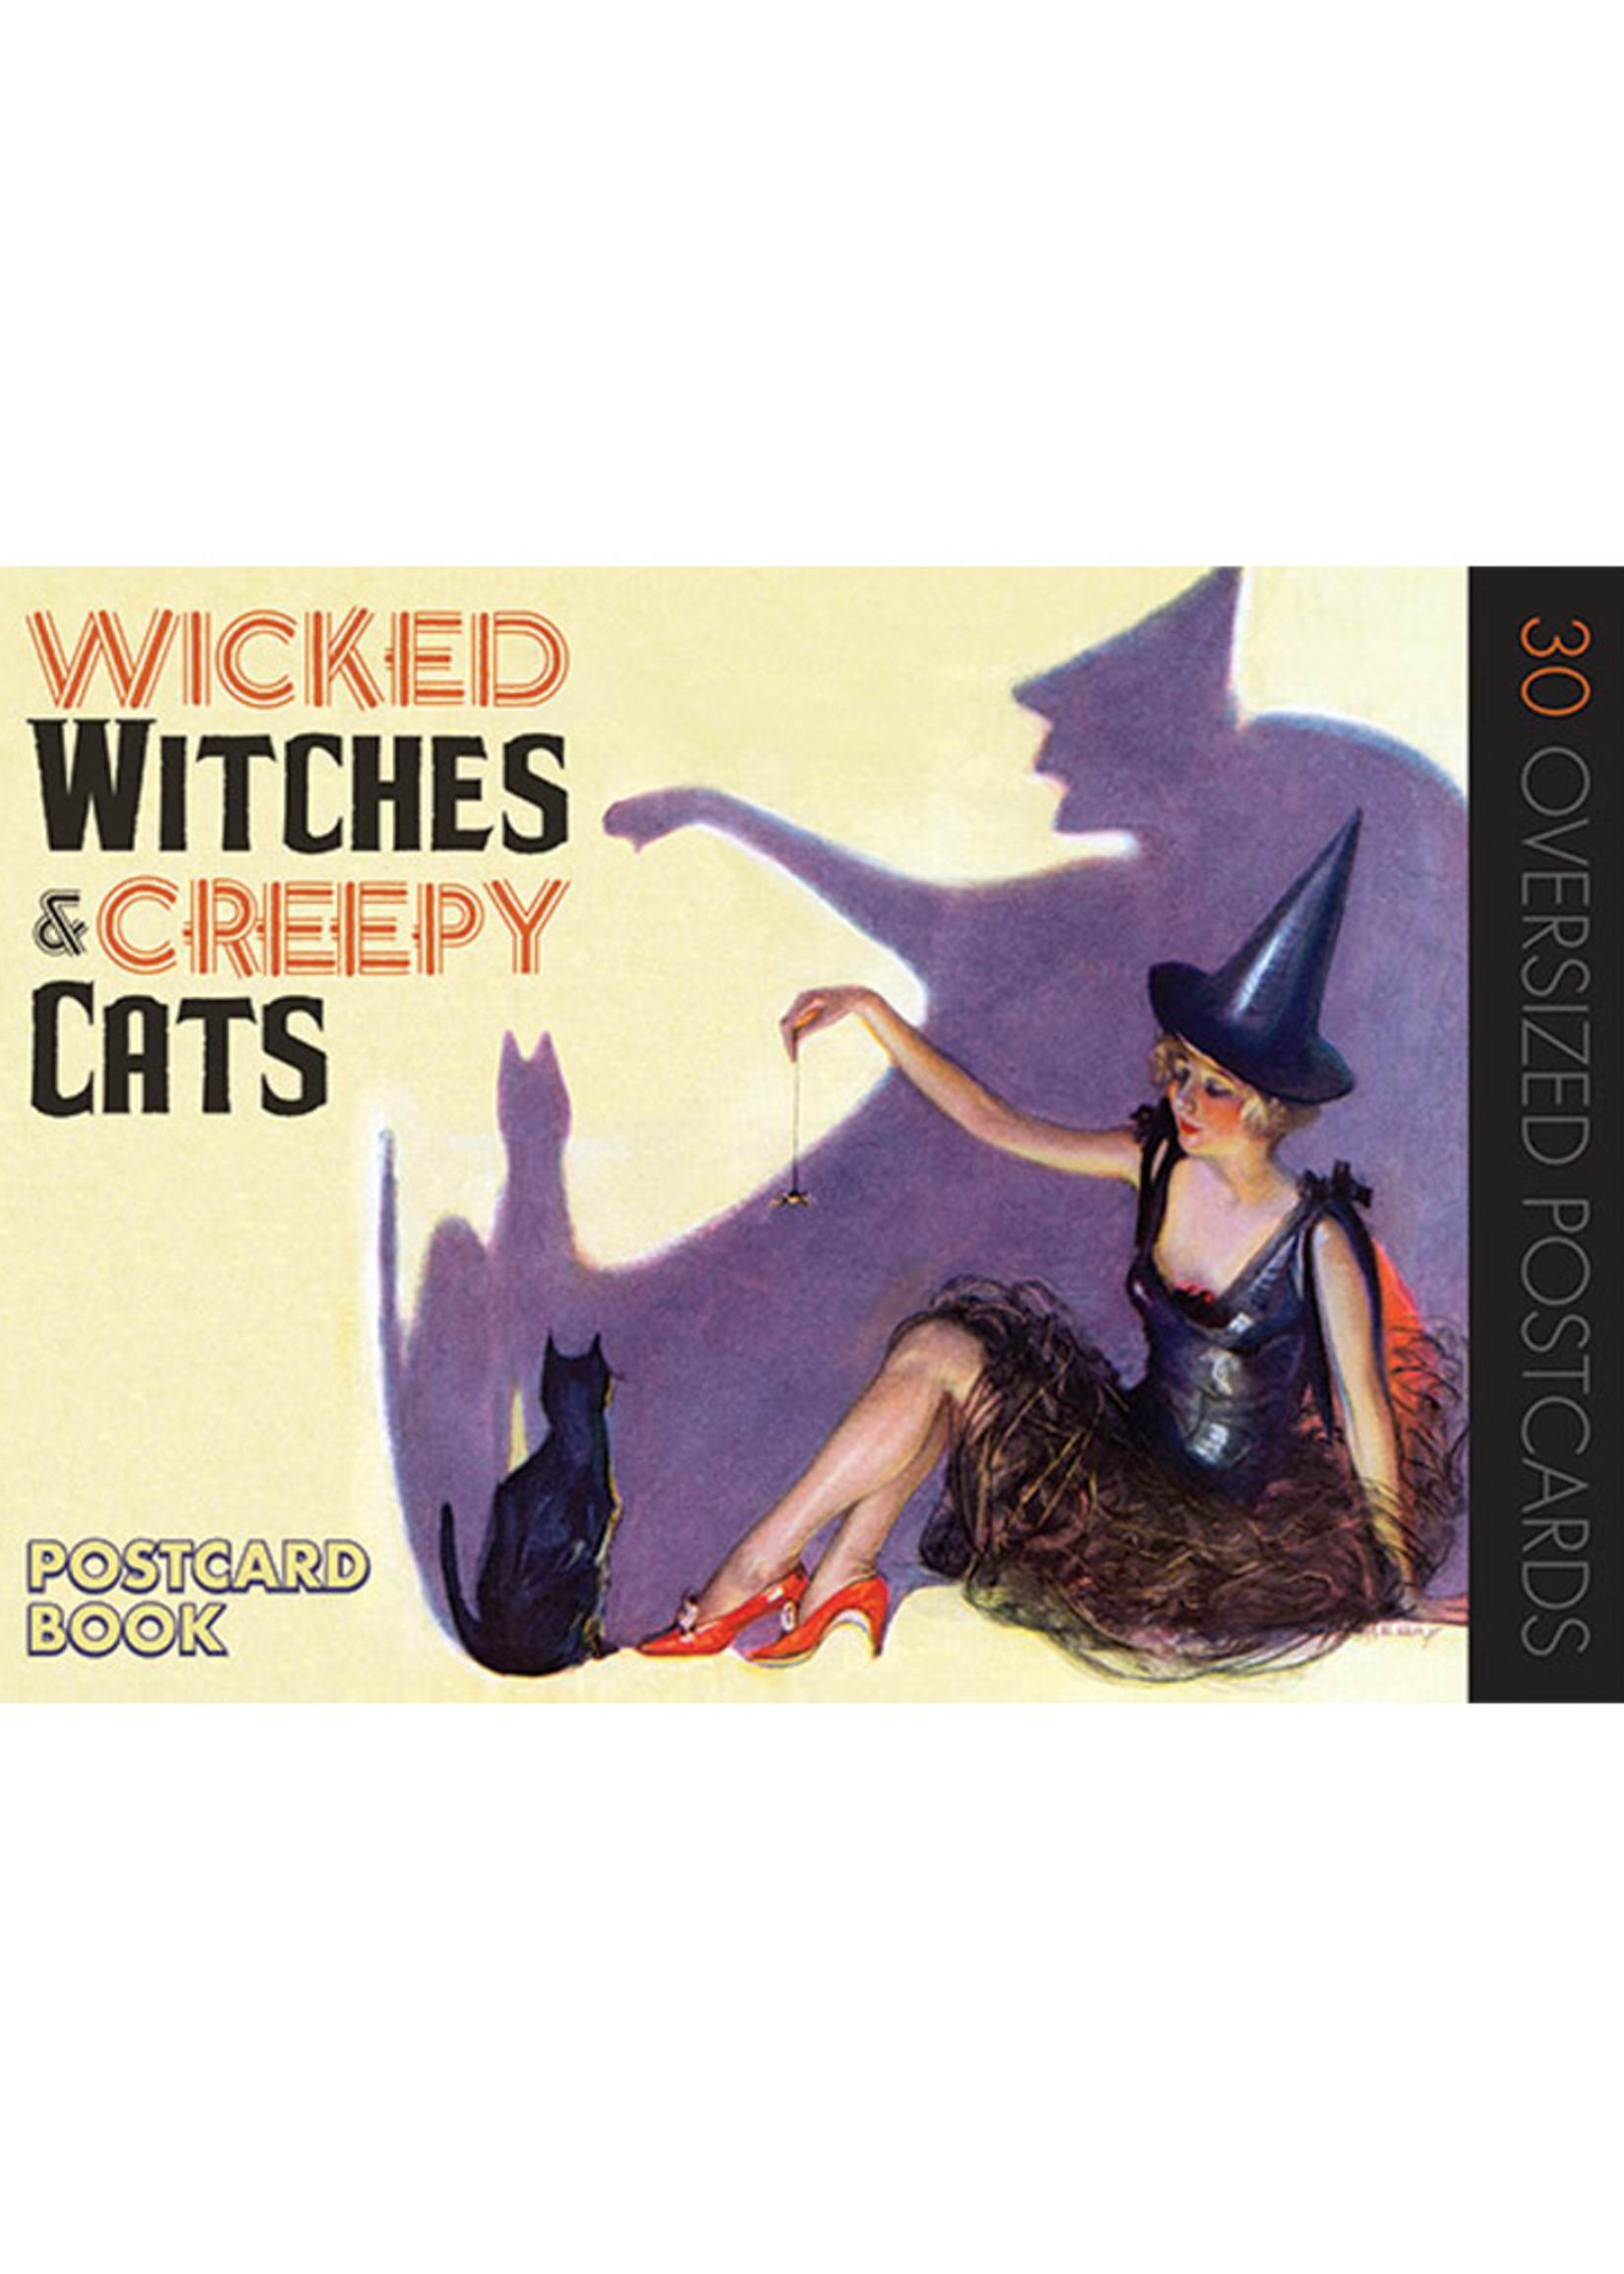 Wicked Witches & Creepy Cats Postcards, Set of 30